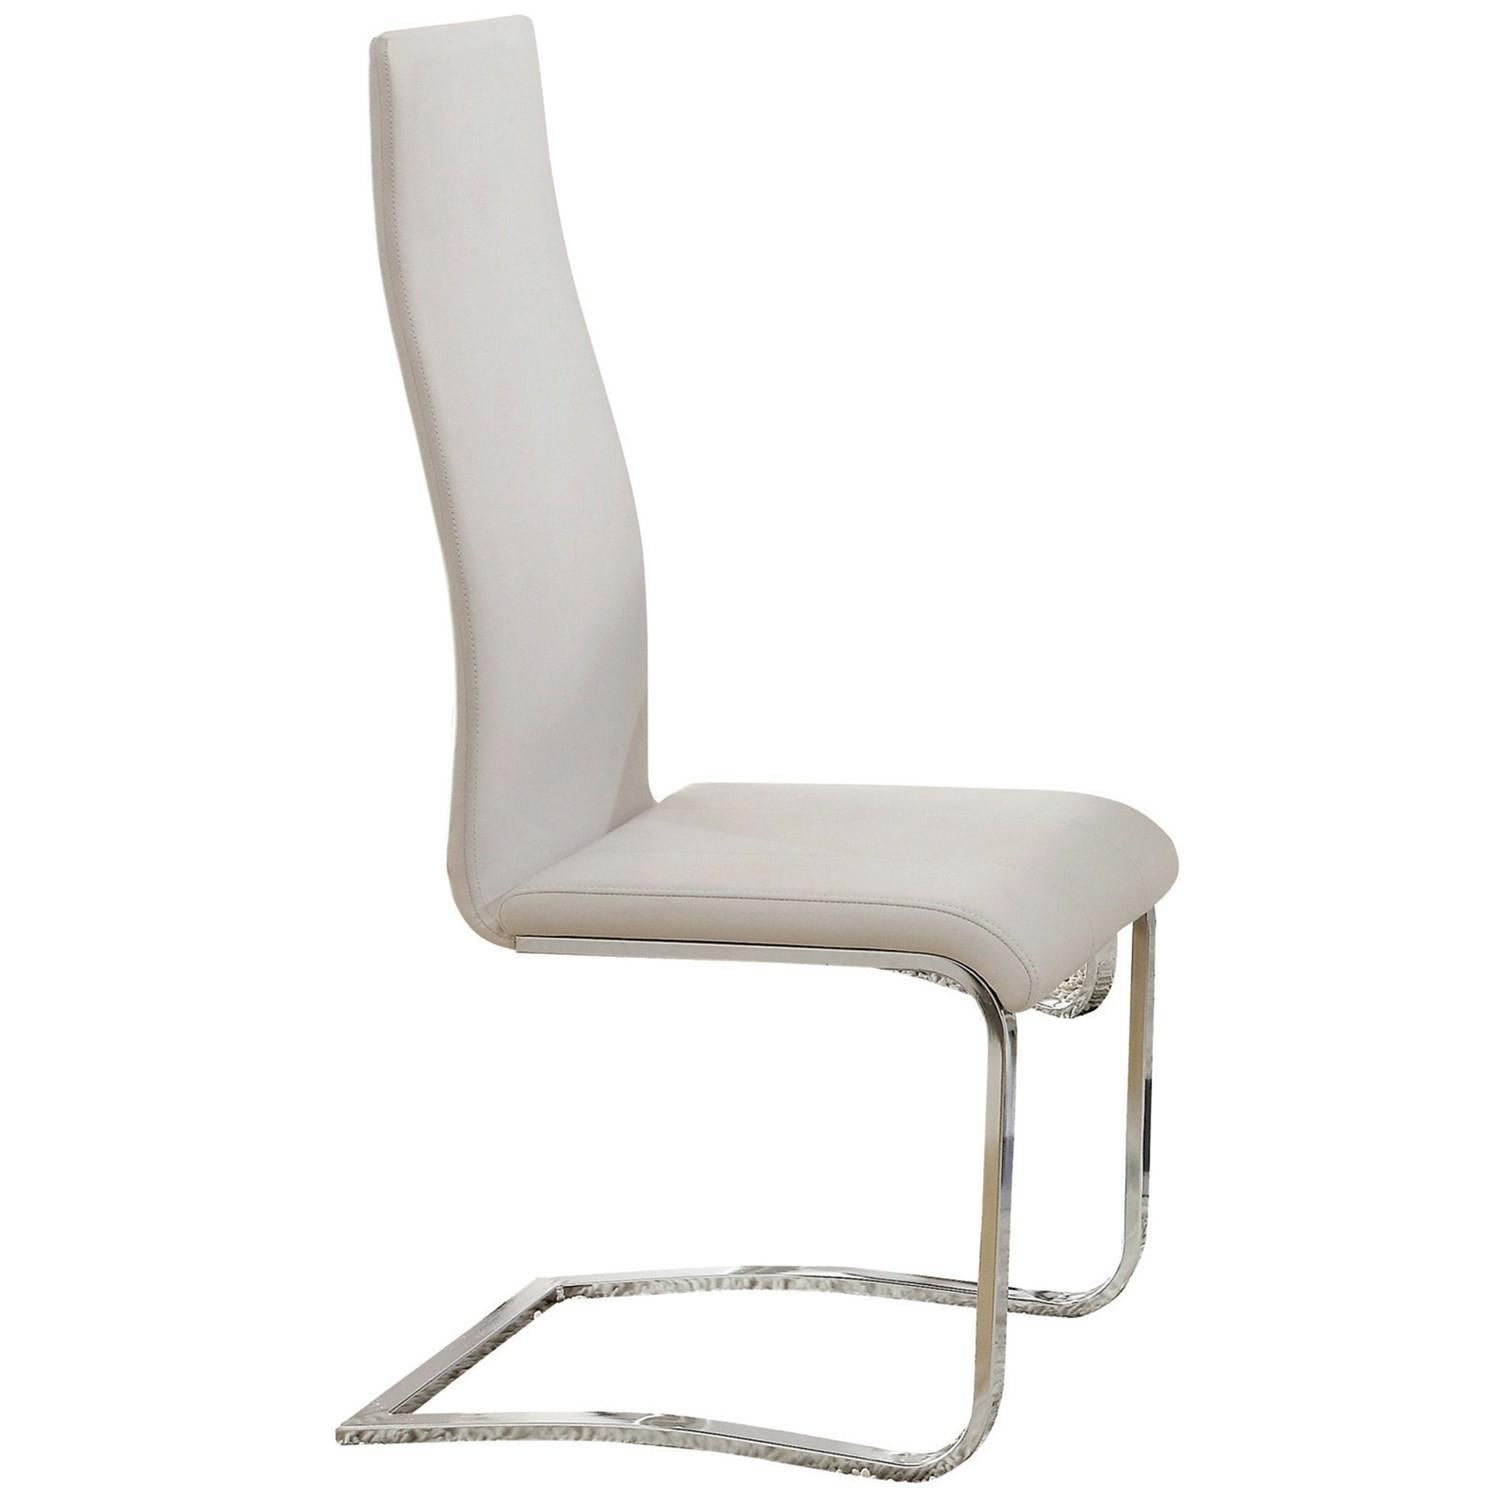 Amazing Modern Faux Leather Dining Chair In White W Chrome Legs Beatyapartments Chair Design Images Beatyapartmentscom